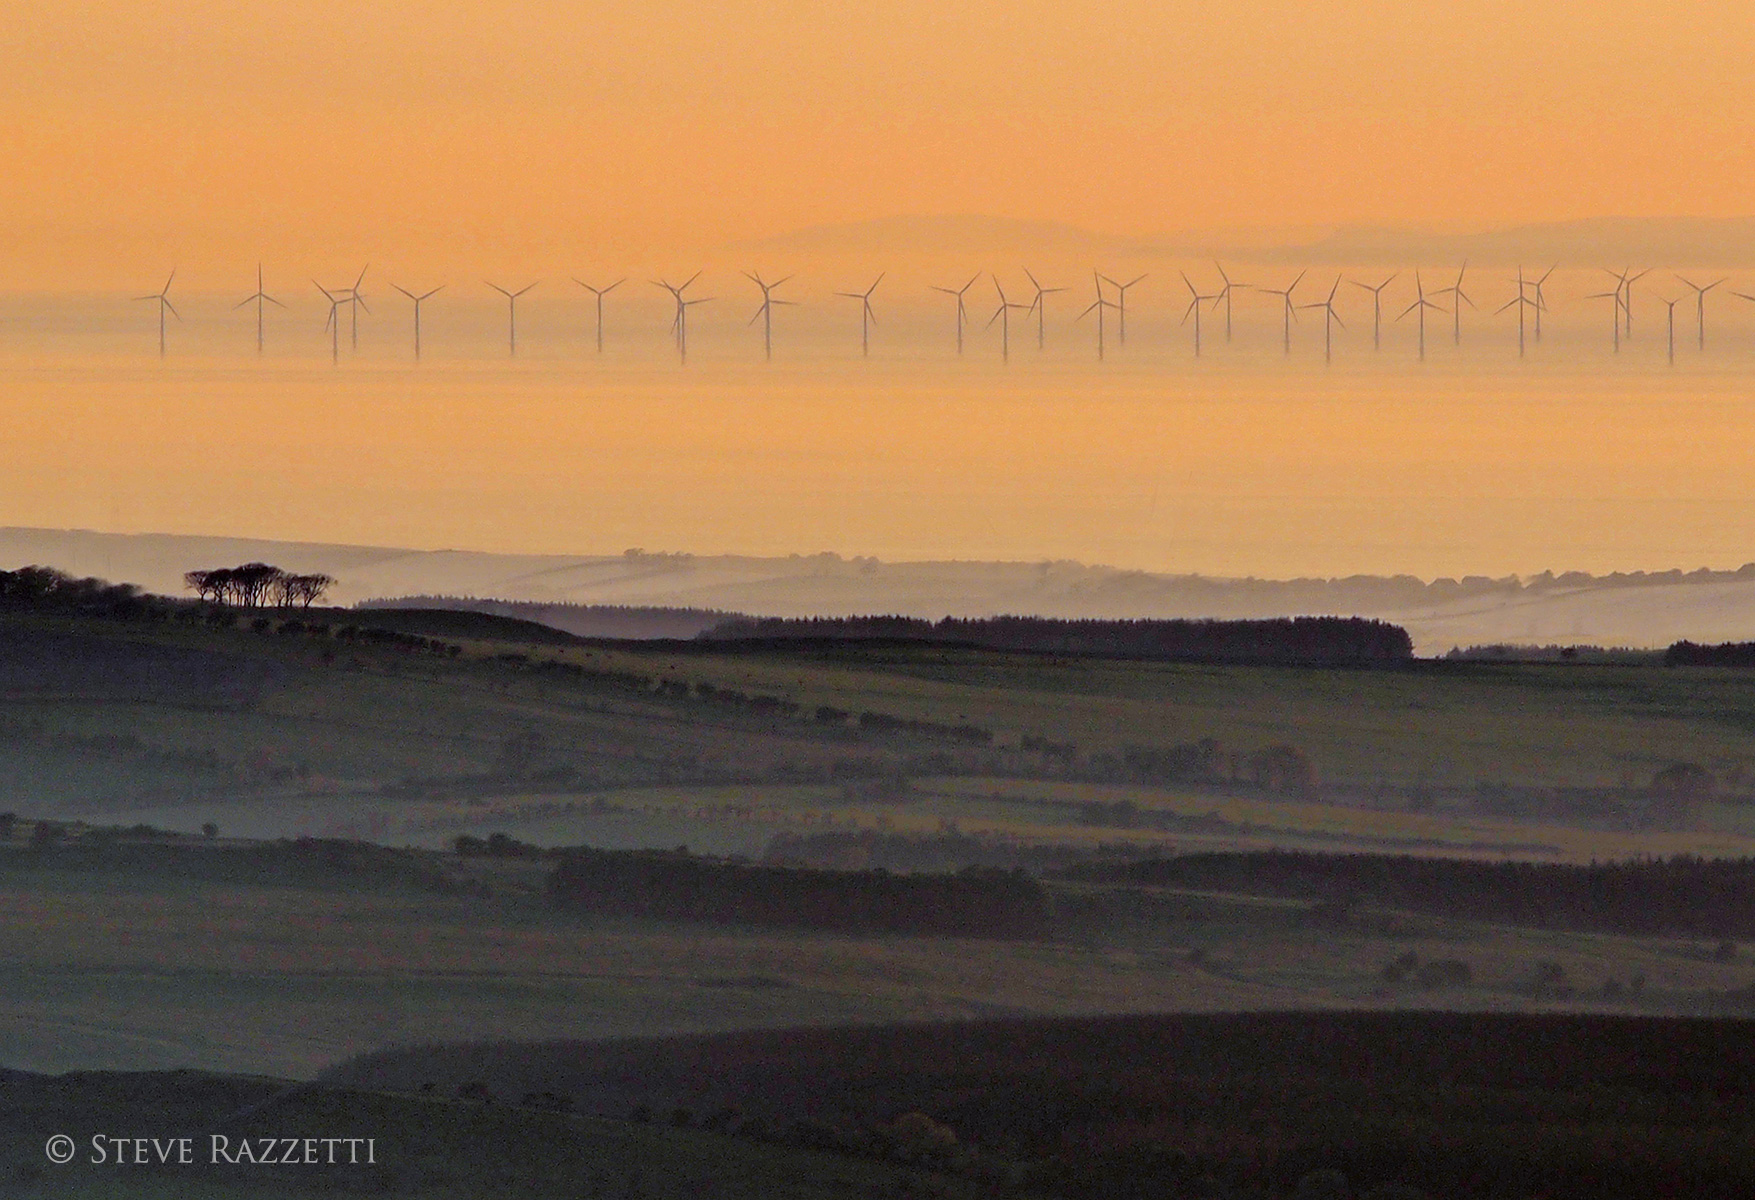 A telephoto at sunset from the top of Binsey. This windfarm was commissioned in 2010 by E.ON and consists of 60 3Mw turbines, is functional for 98% of the year and provides sufficient power for 117,000 households.Nikon D610, 180mm